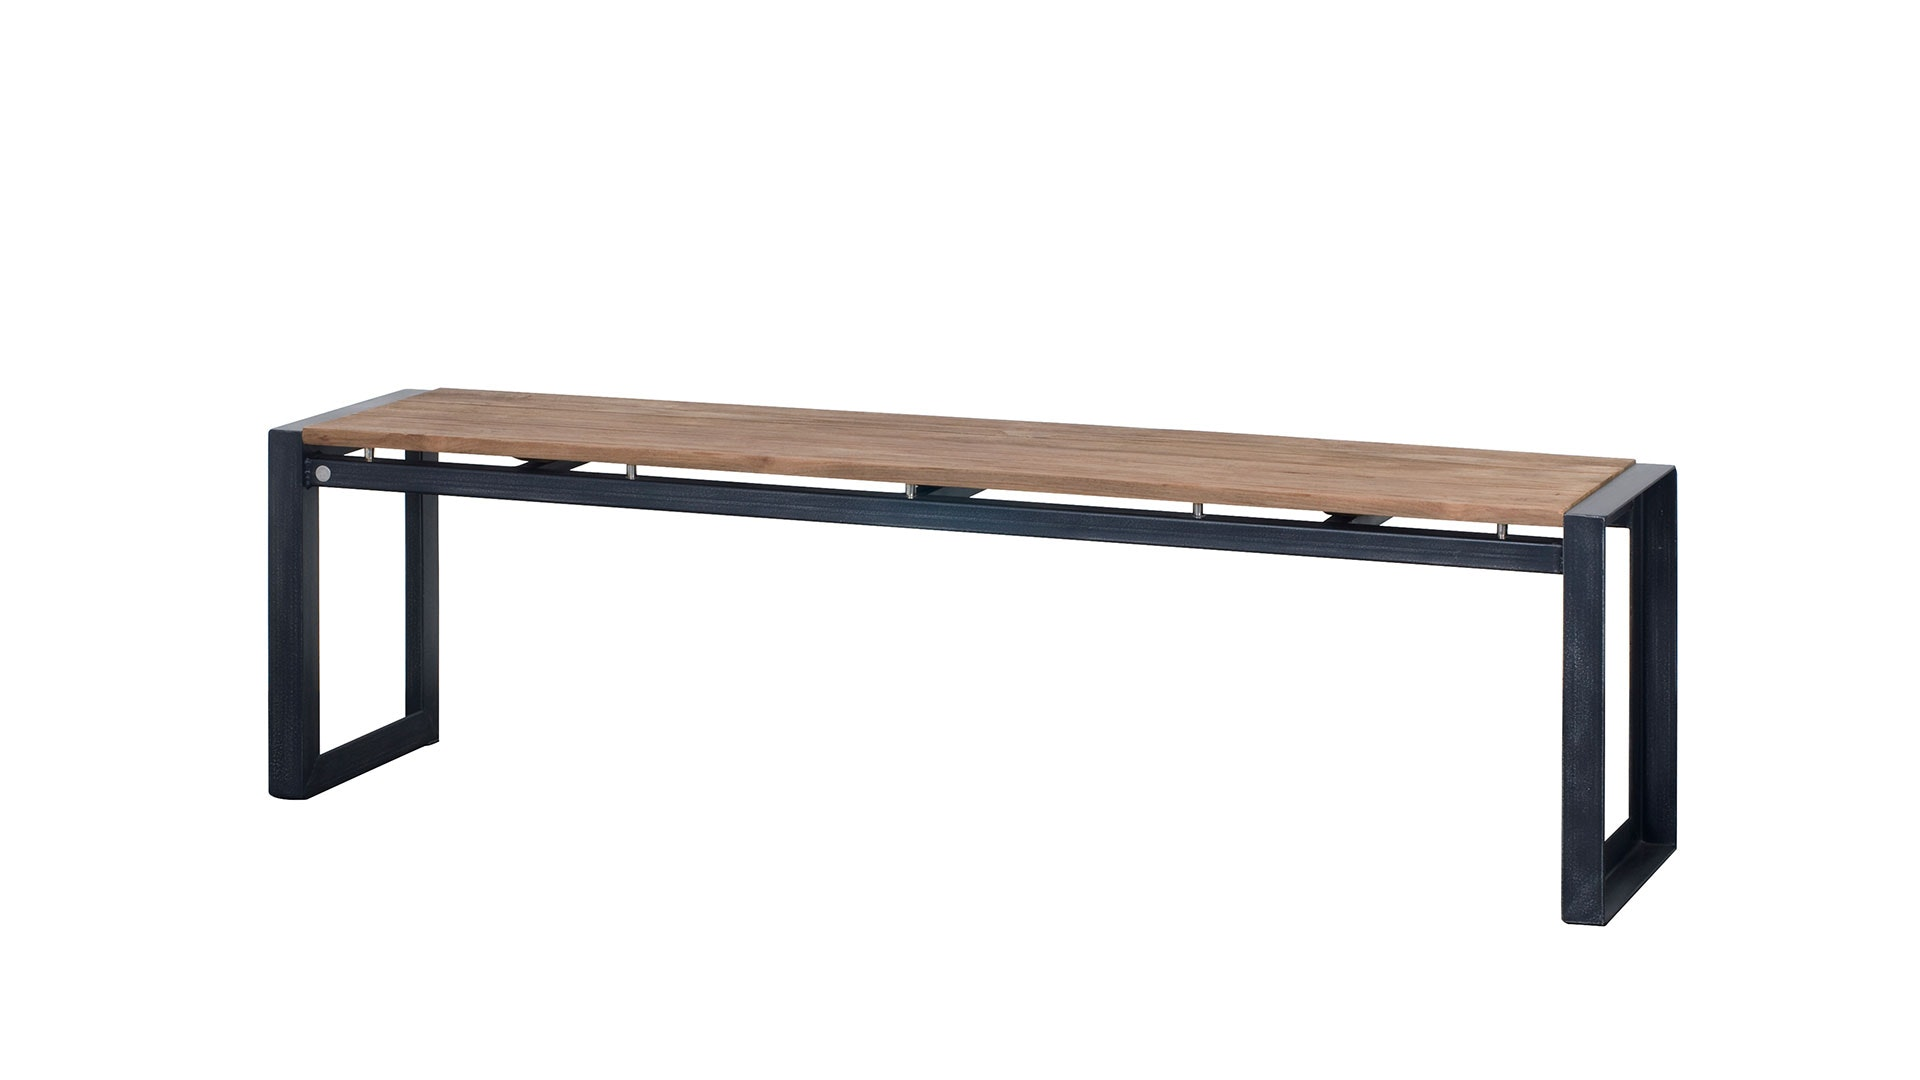 Fendy 1850mm Bench Seat by D-Bodhi Collection